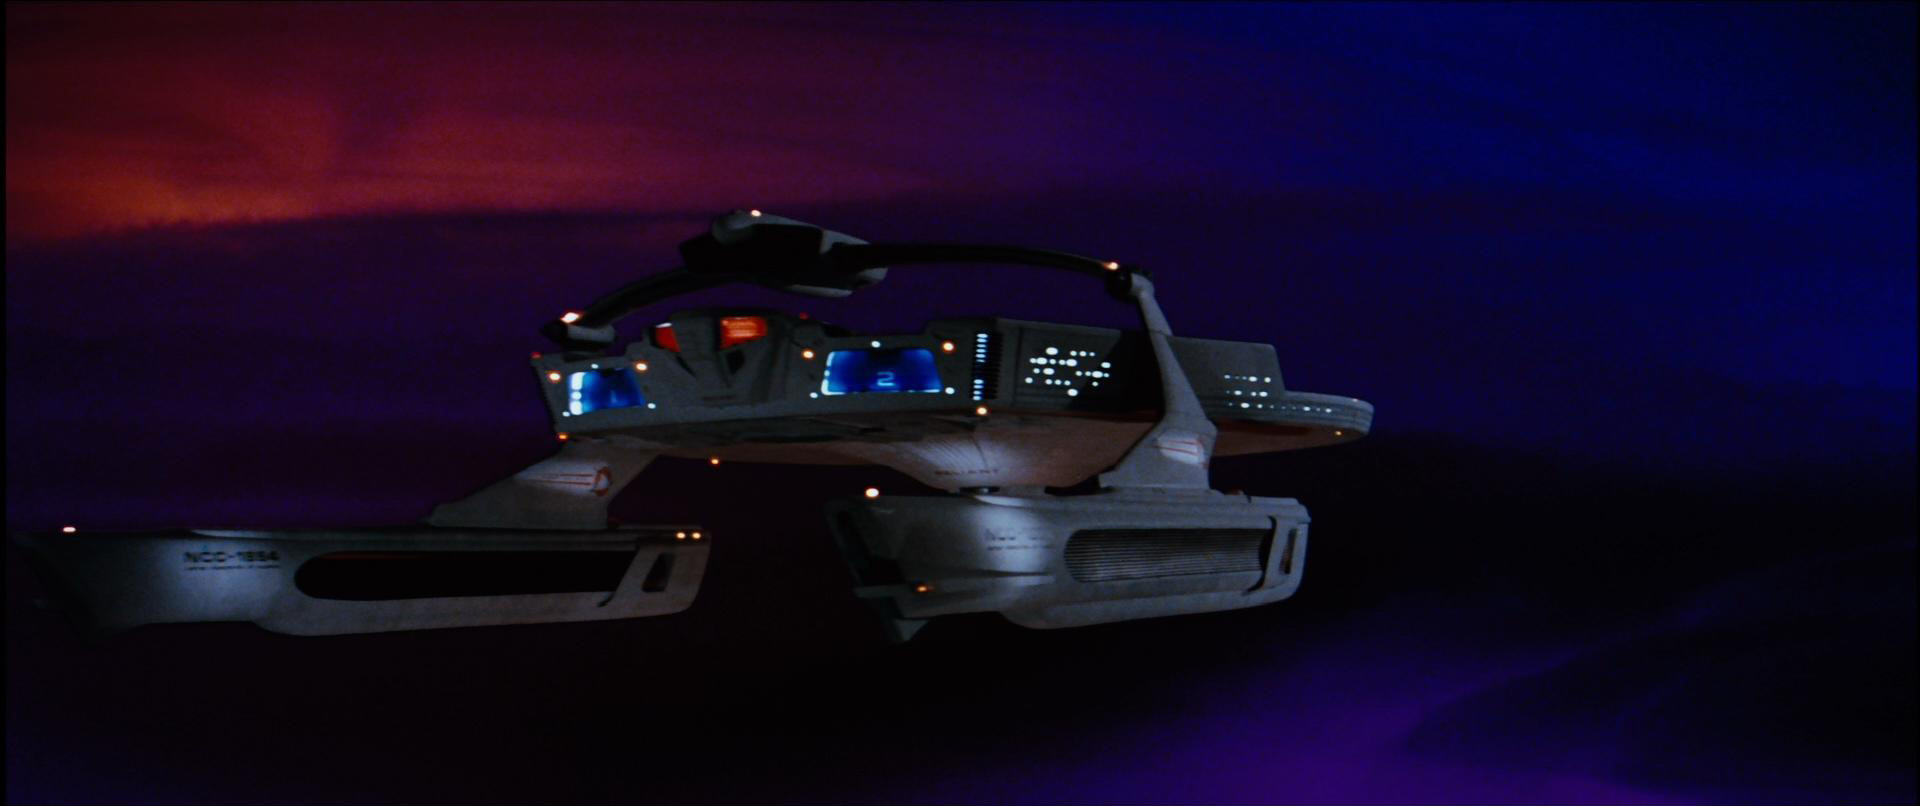 Star Trek II: Der Zorn des Khan (The Wrath of Khan) Blu-ray Screencap © CBS/Paramount